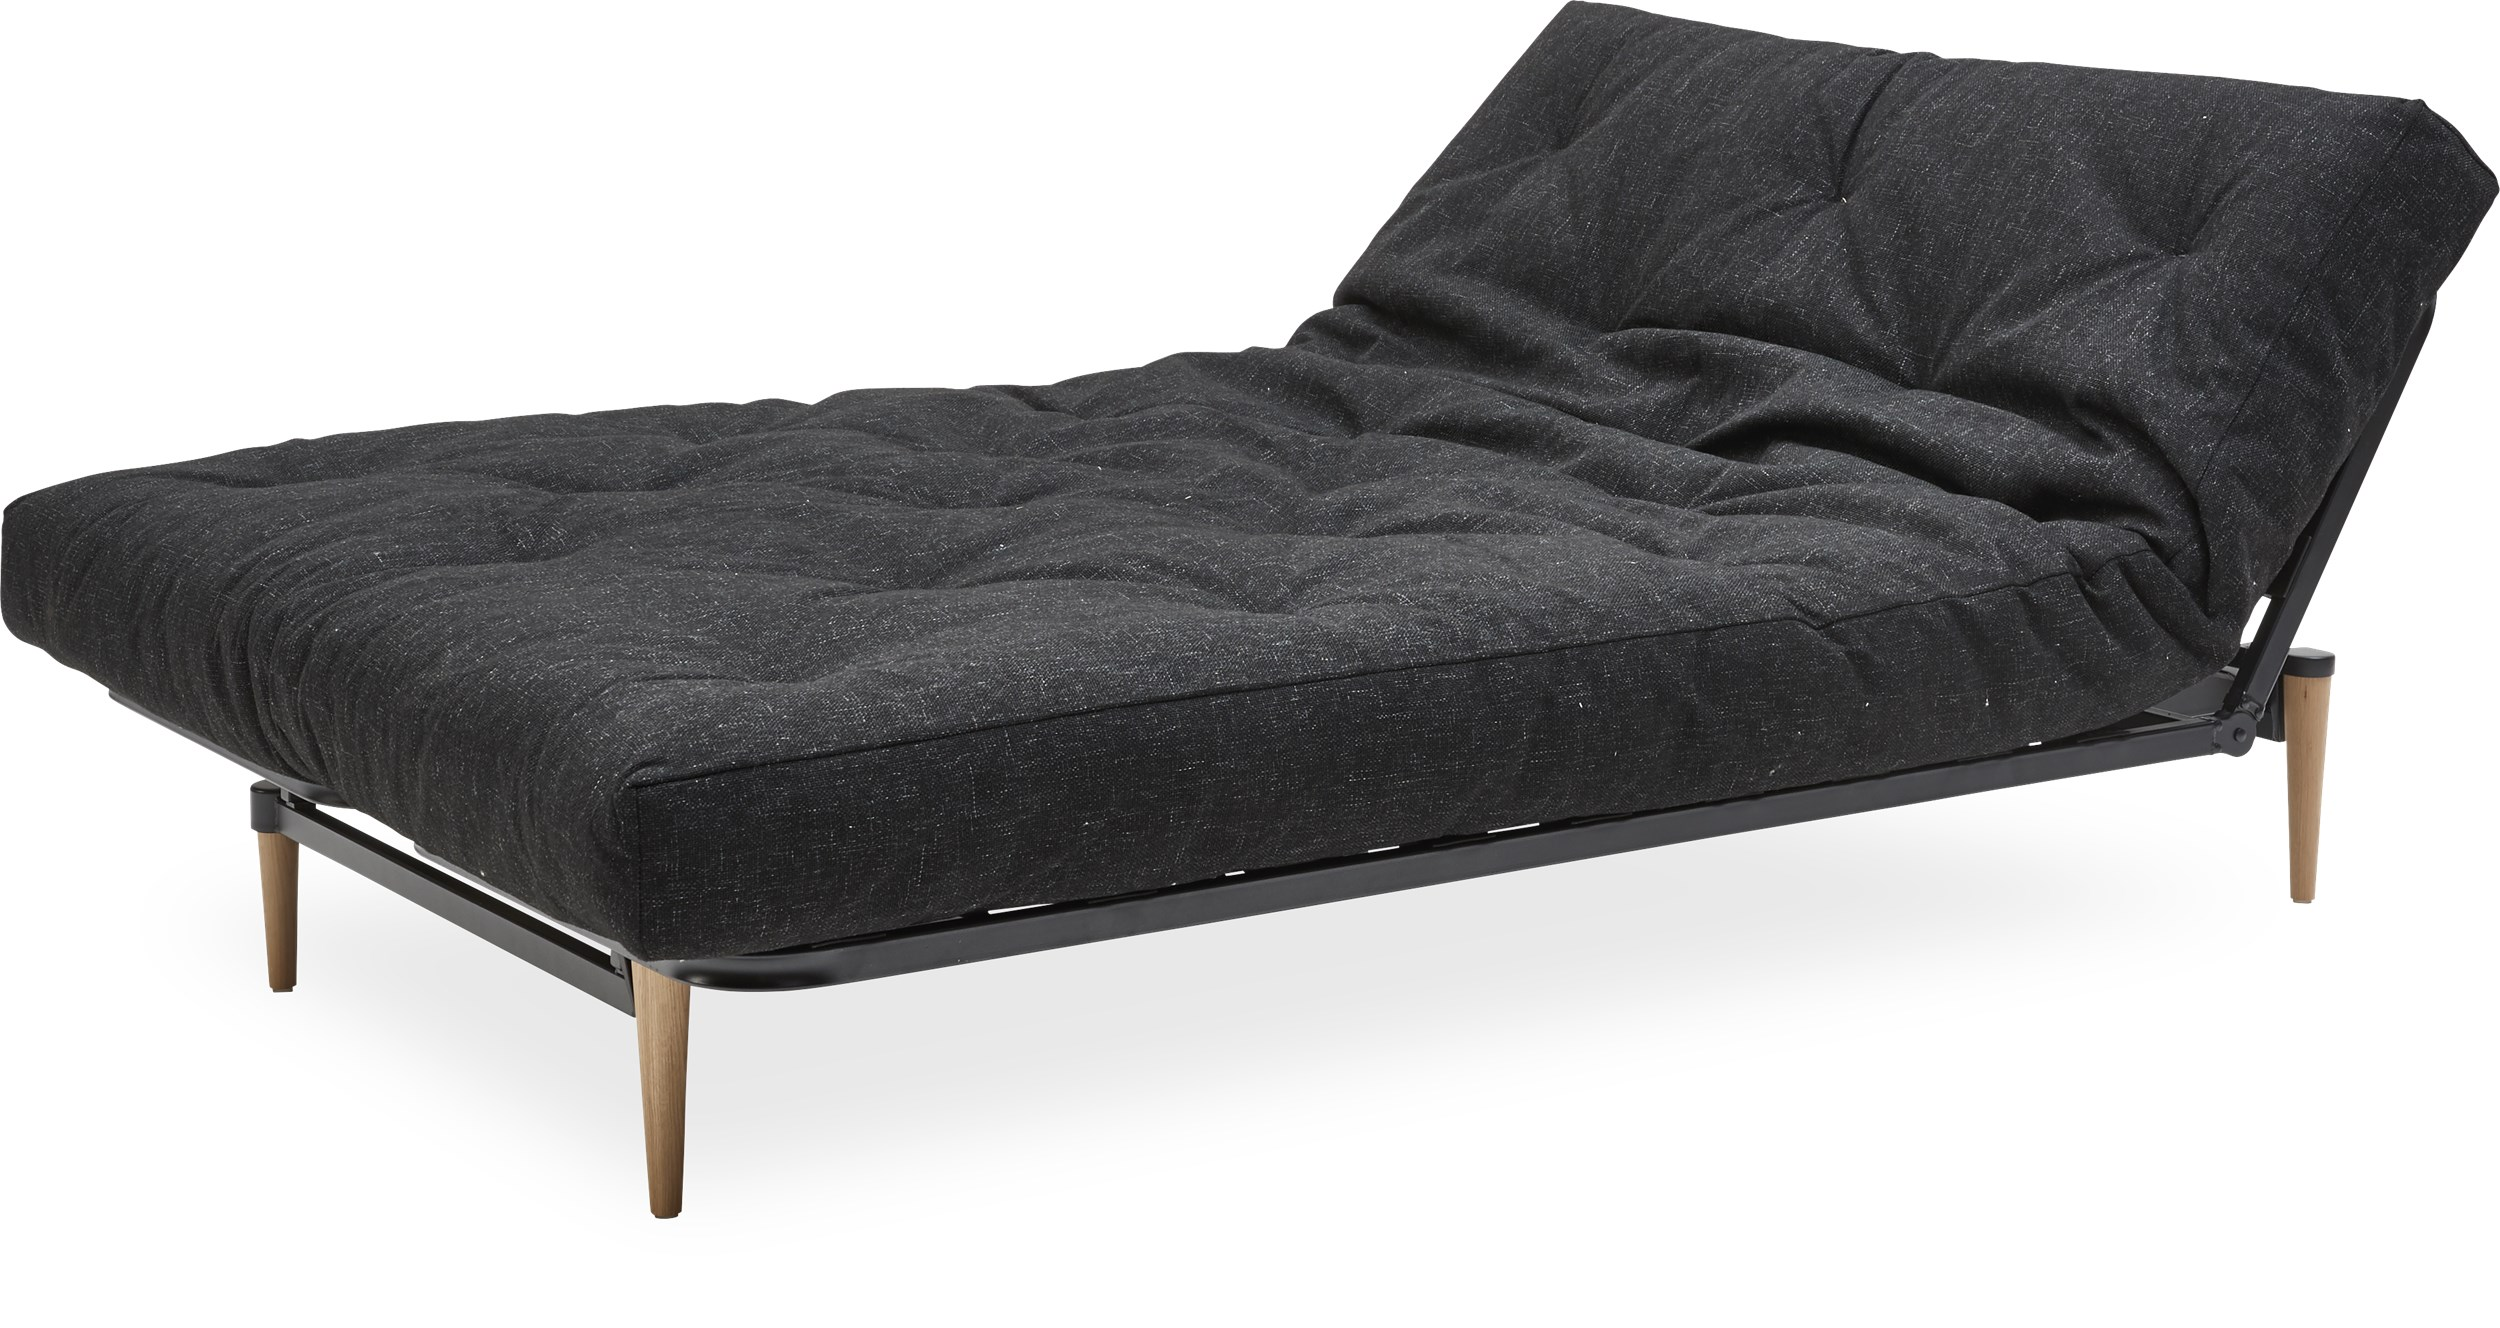 Innovation Living - Colpus Spring Round Sovesofa